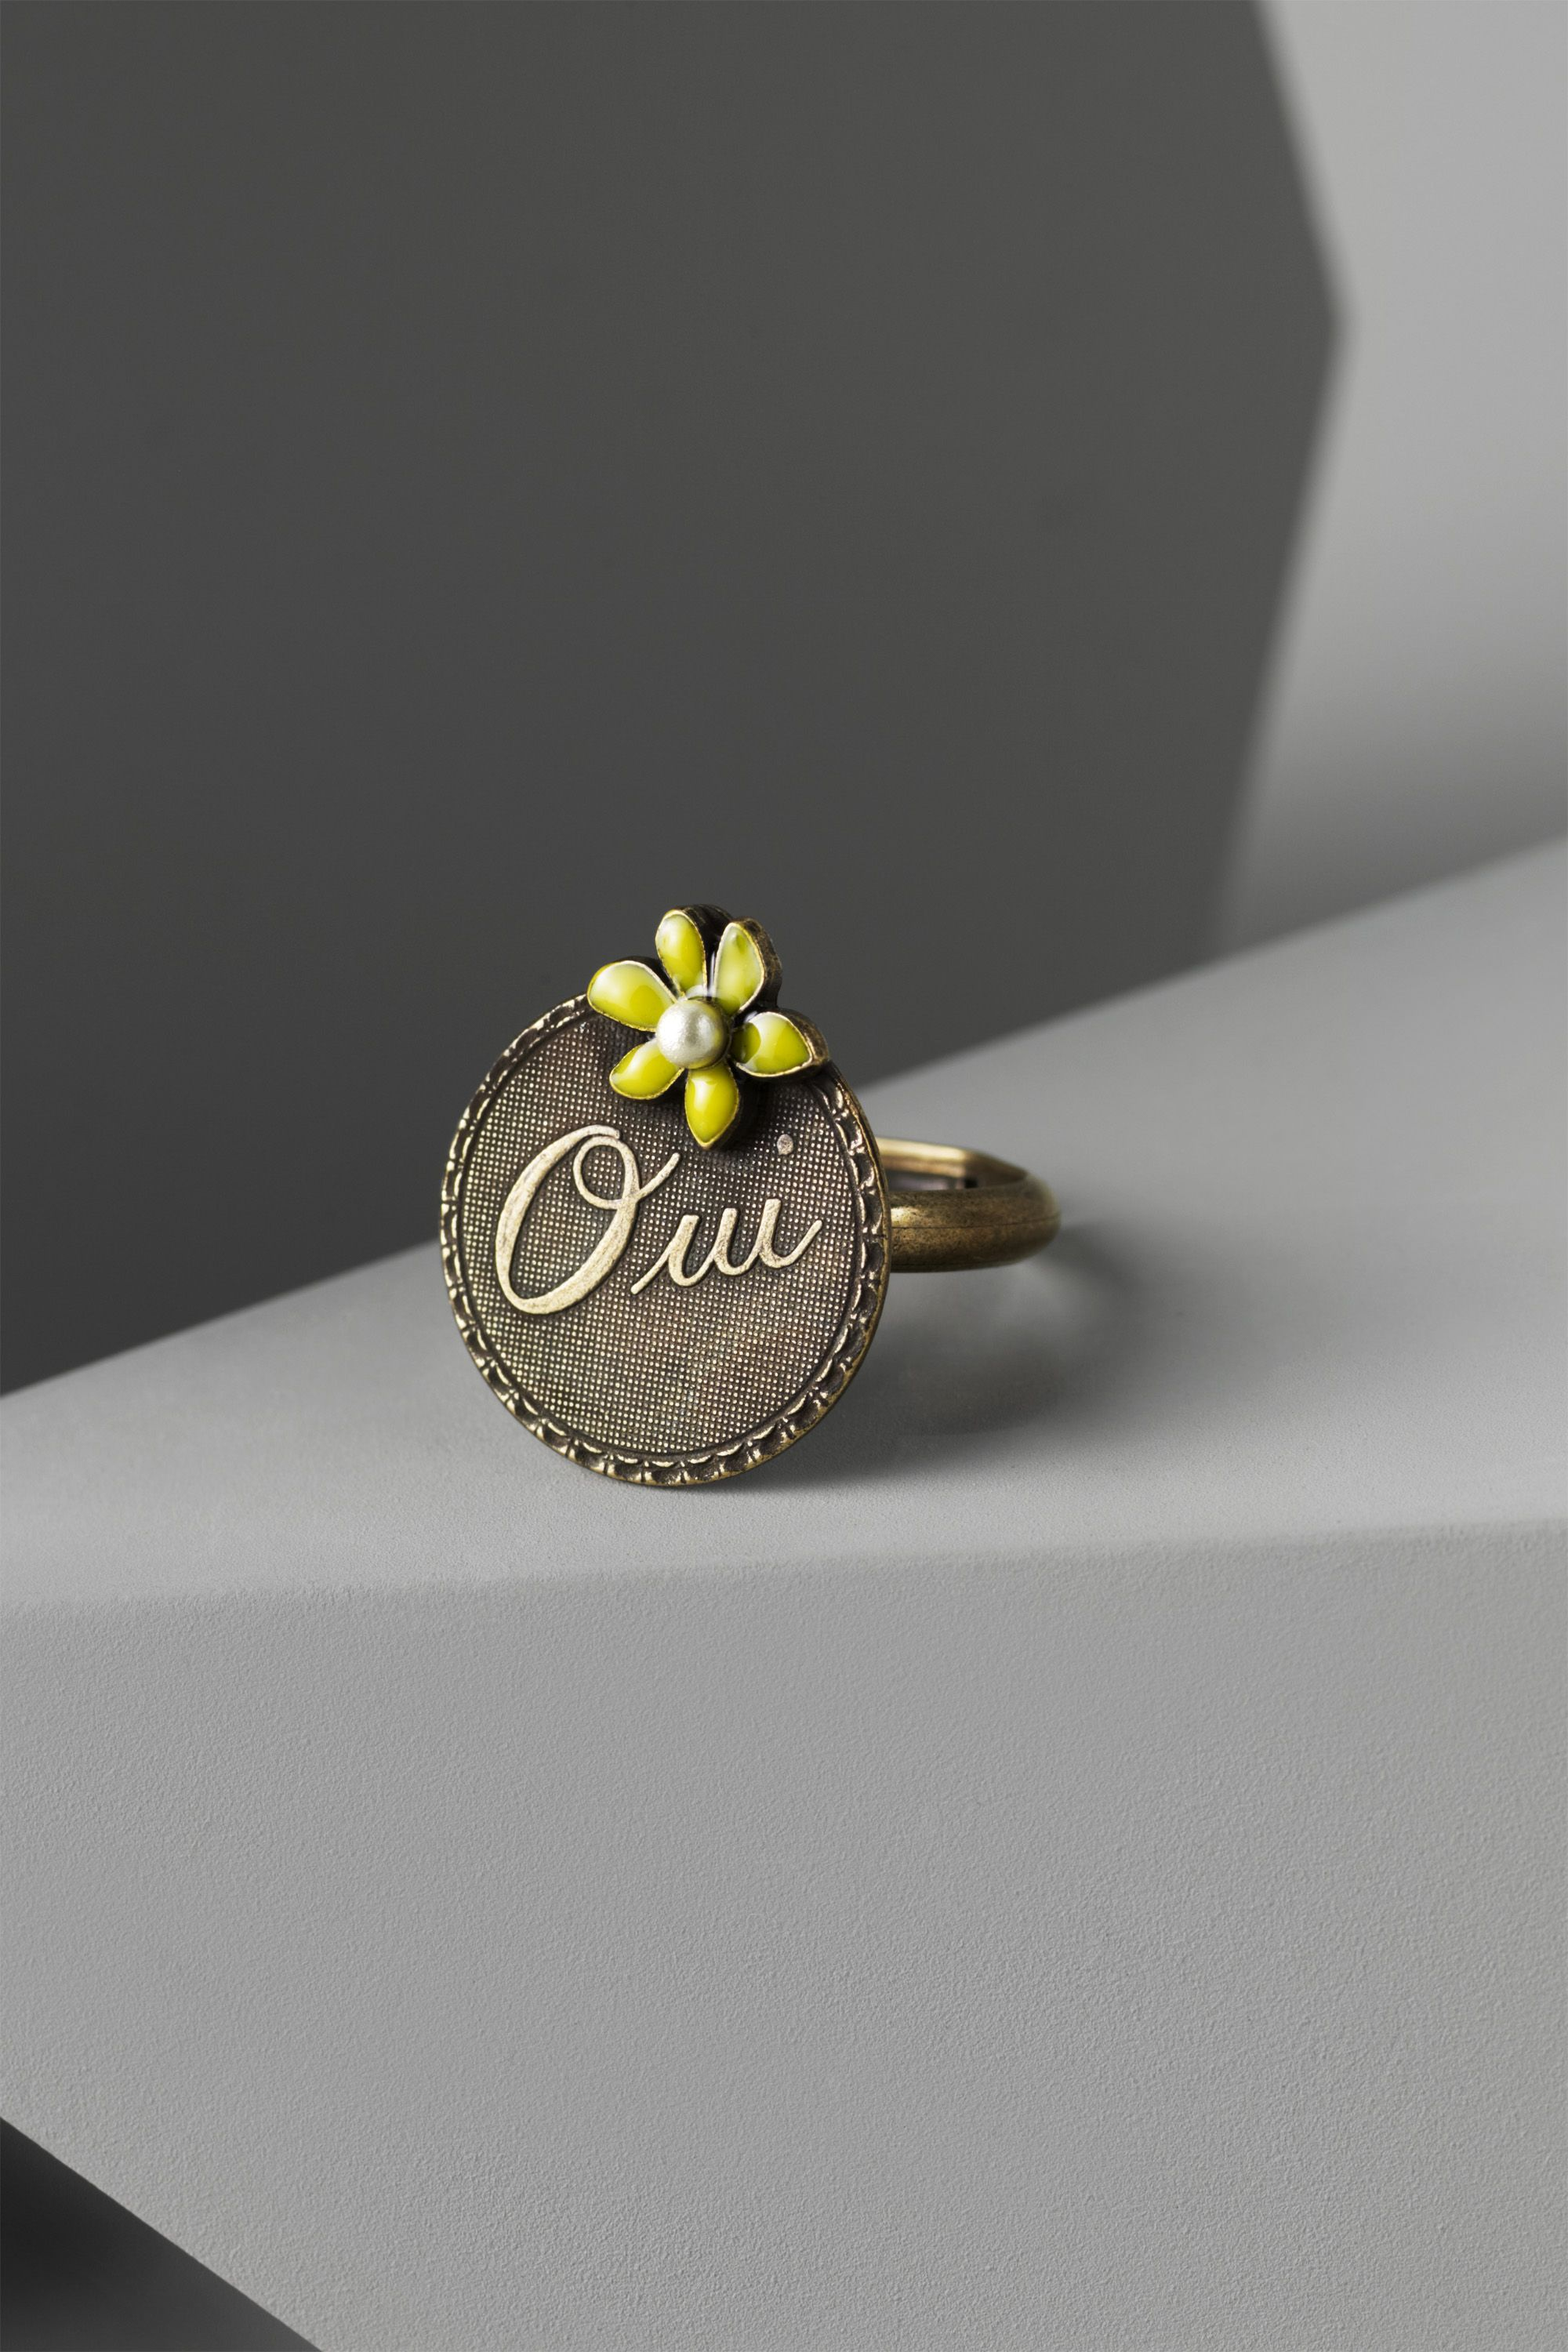 Foreign Affirmation Ring